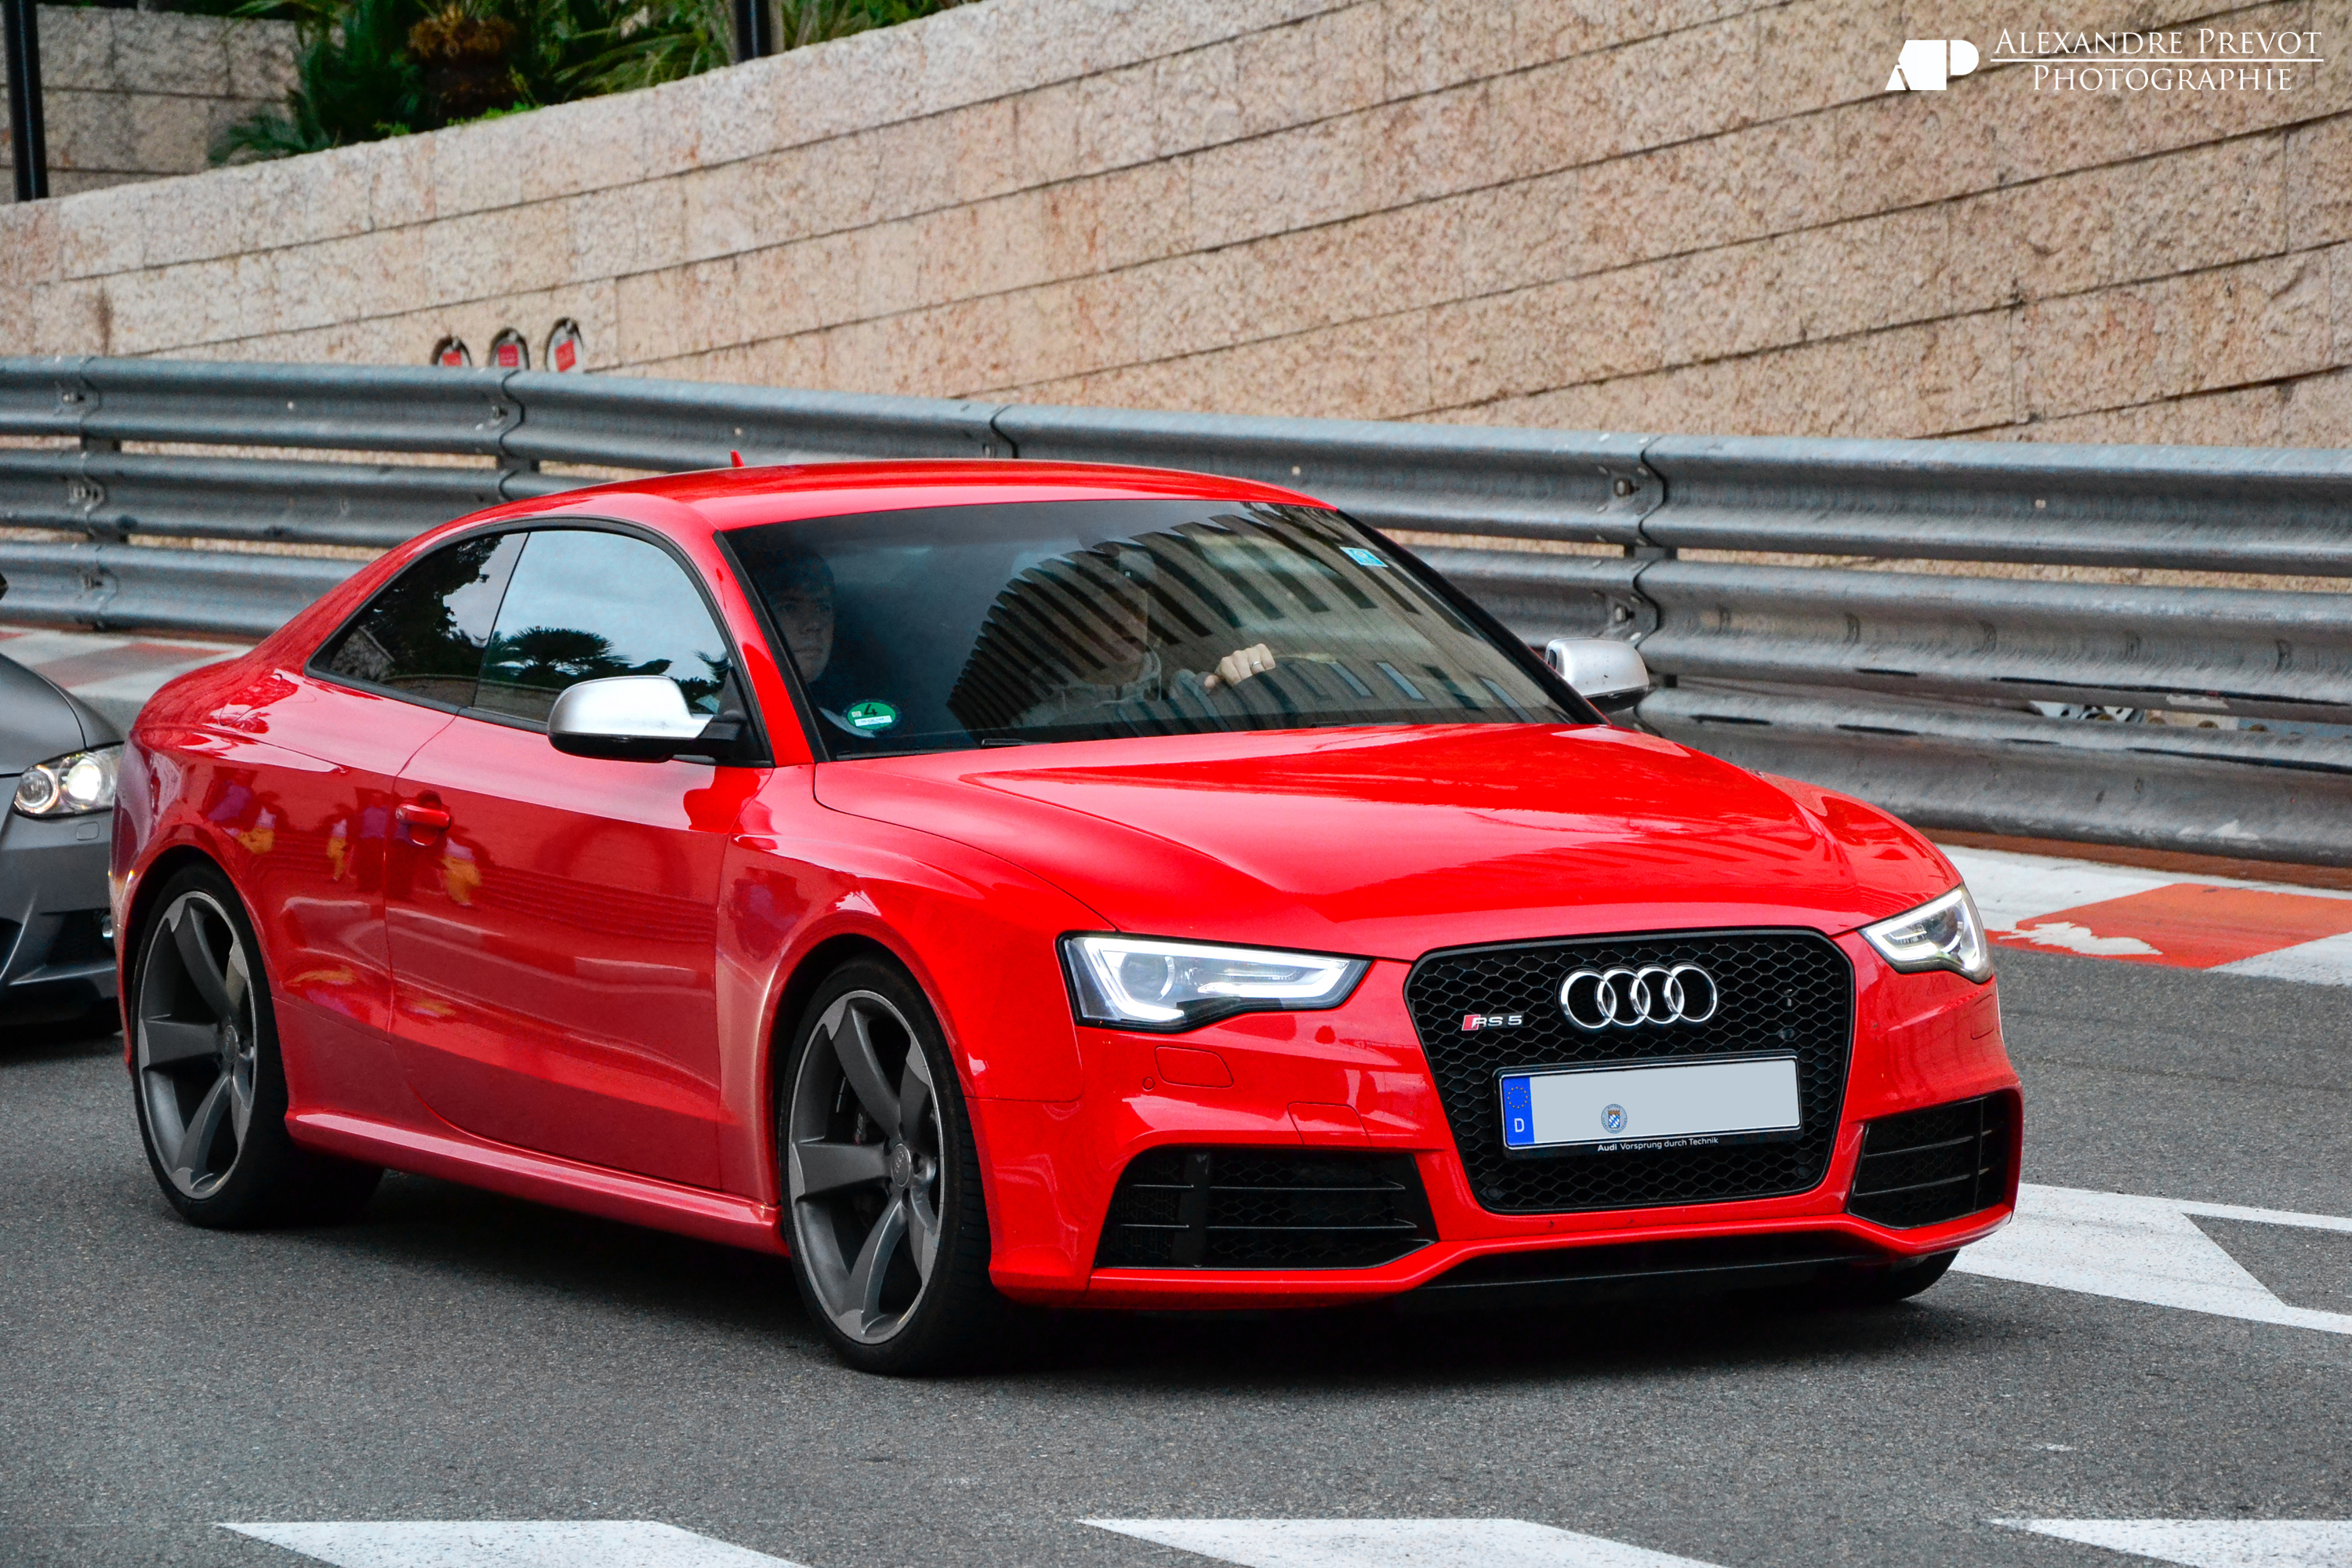 audi rs5 pictures #9